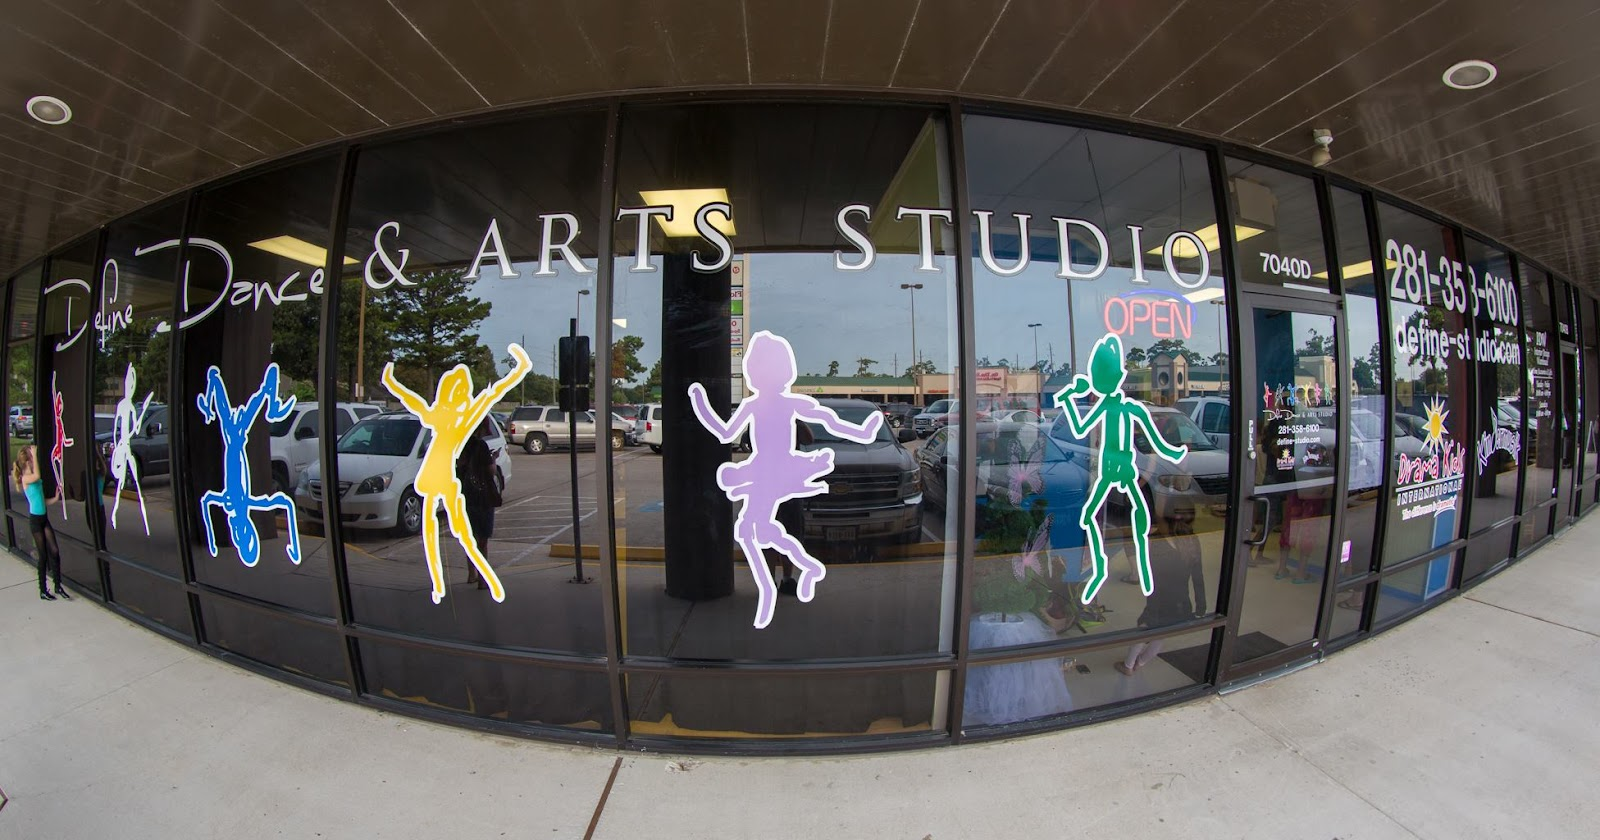 Dance Studio sign picture from outside.jpg